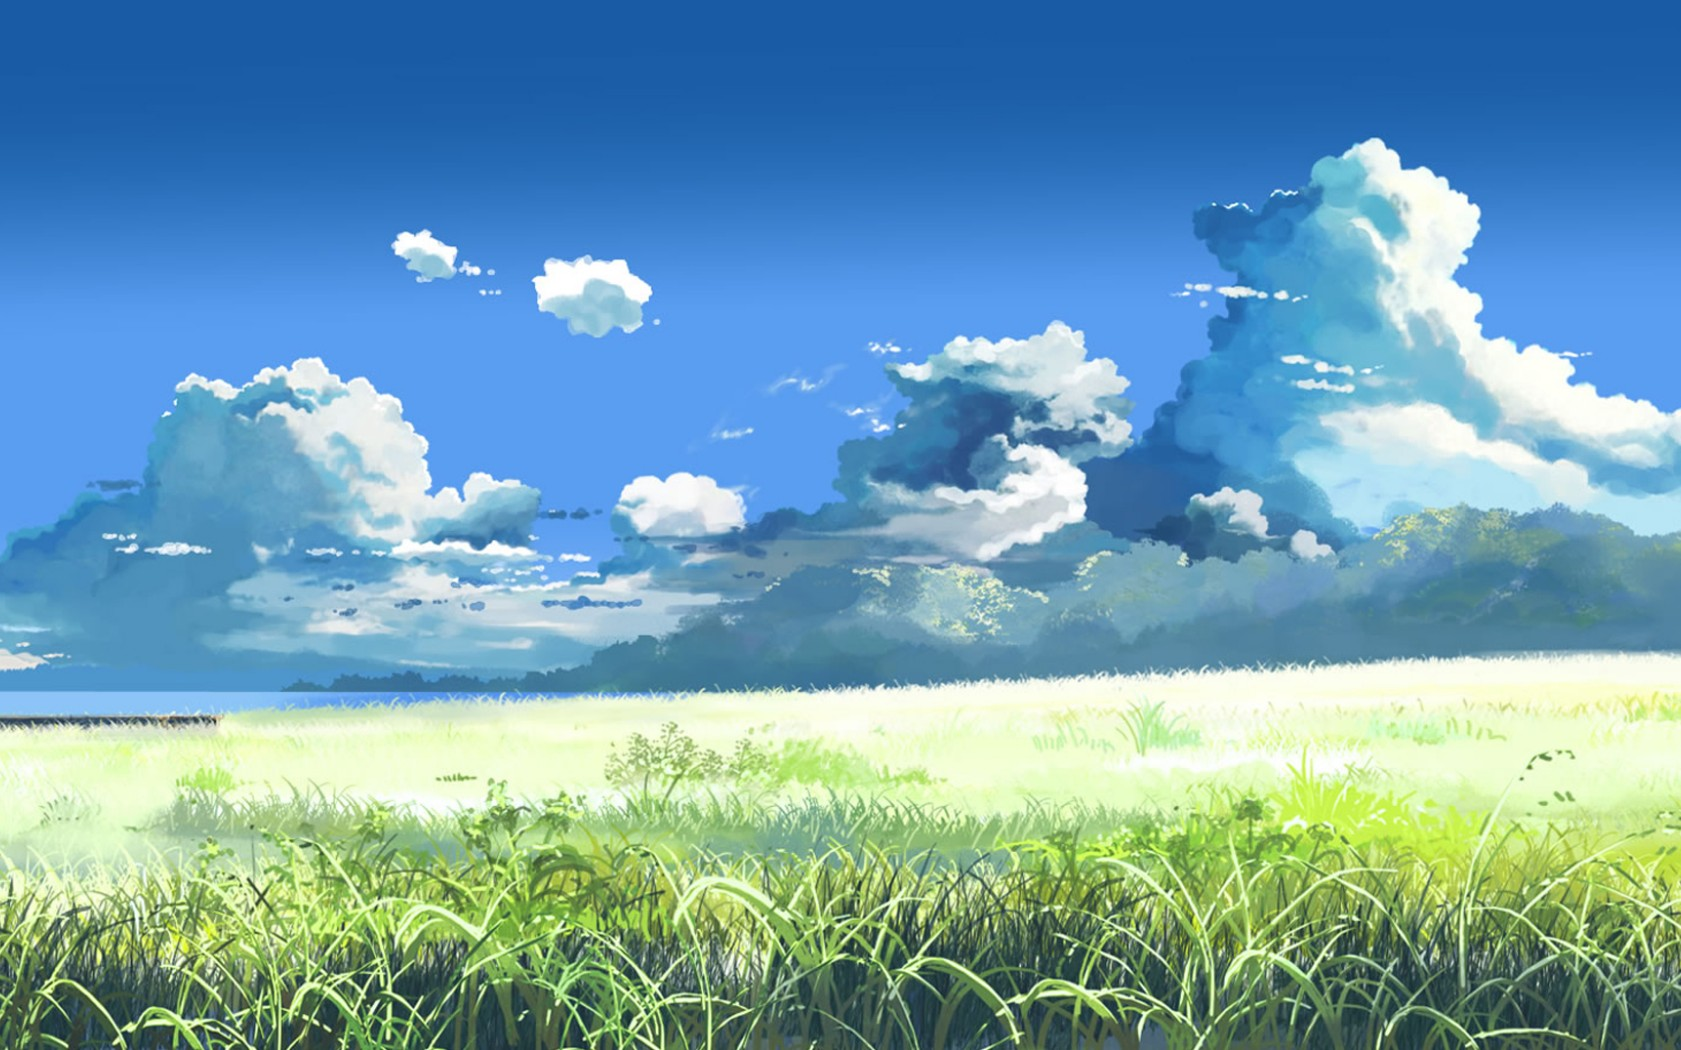 Fantastic Wallpaper Naruto Landscape - latest?cb\u003d20121028230313  Collection_23488.jpg/revision/latest?cb\u003d20121028230313